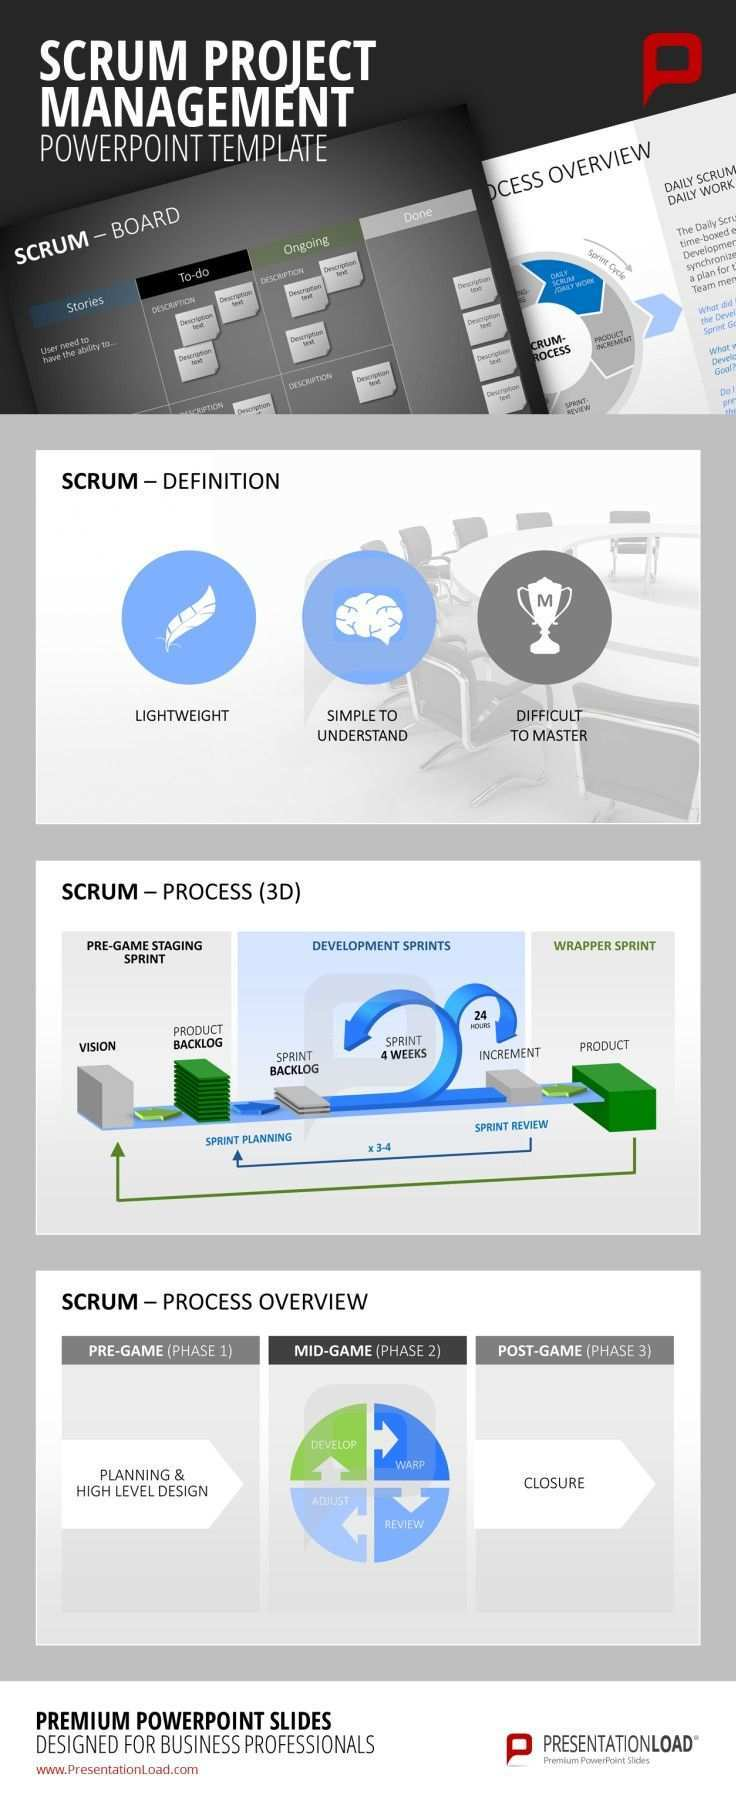 Pin By Learn Project Management Online Pm Courses On Agile Project Management Pinterest Project Management Management And Project Management Templates